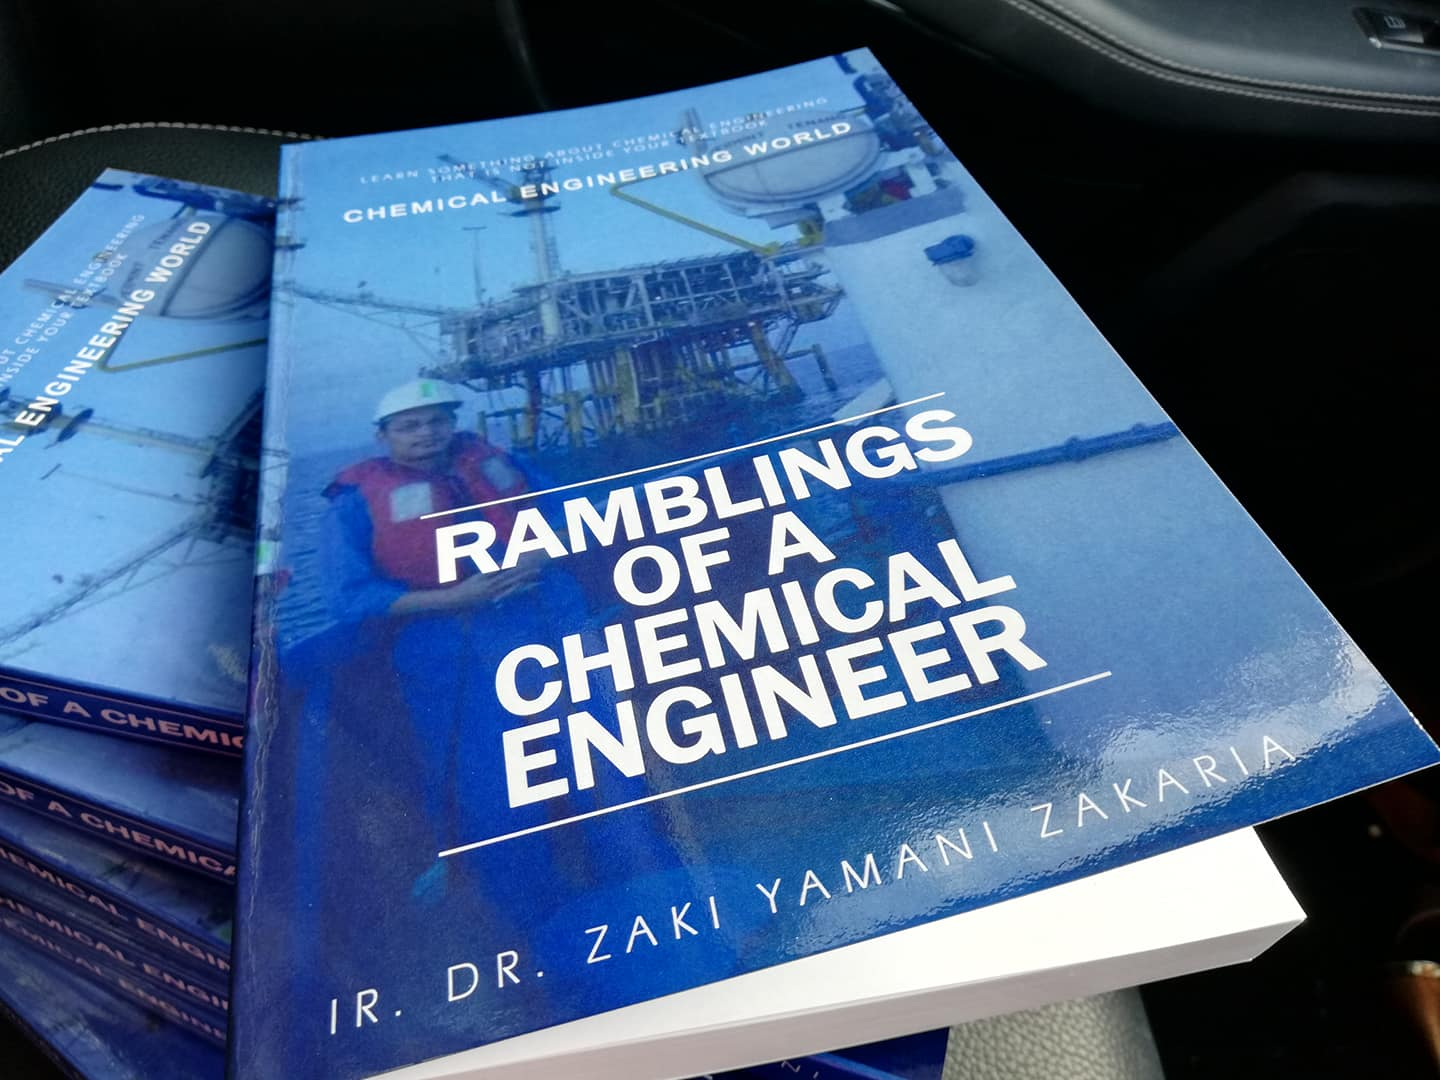 Rambling of a chemical engineer